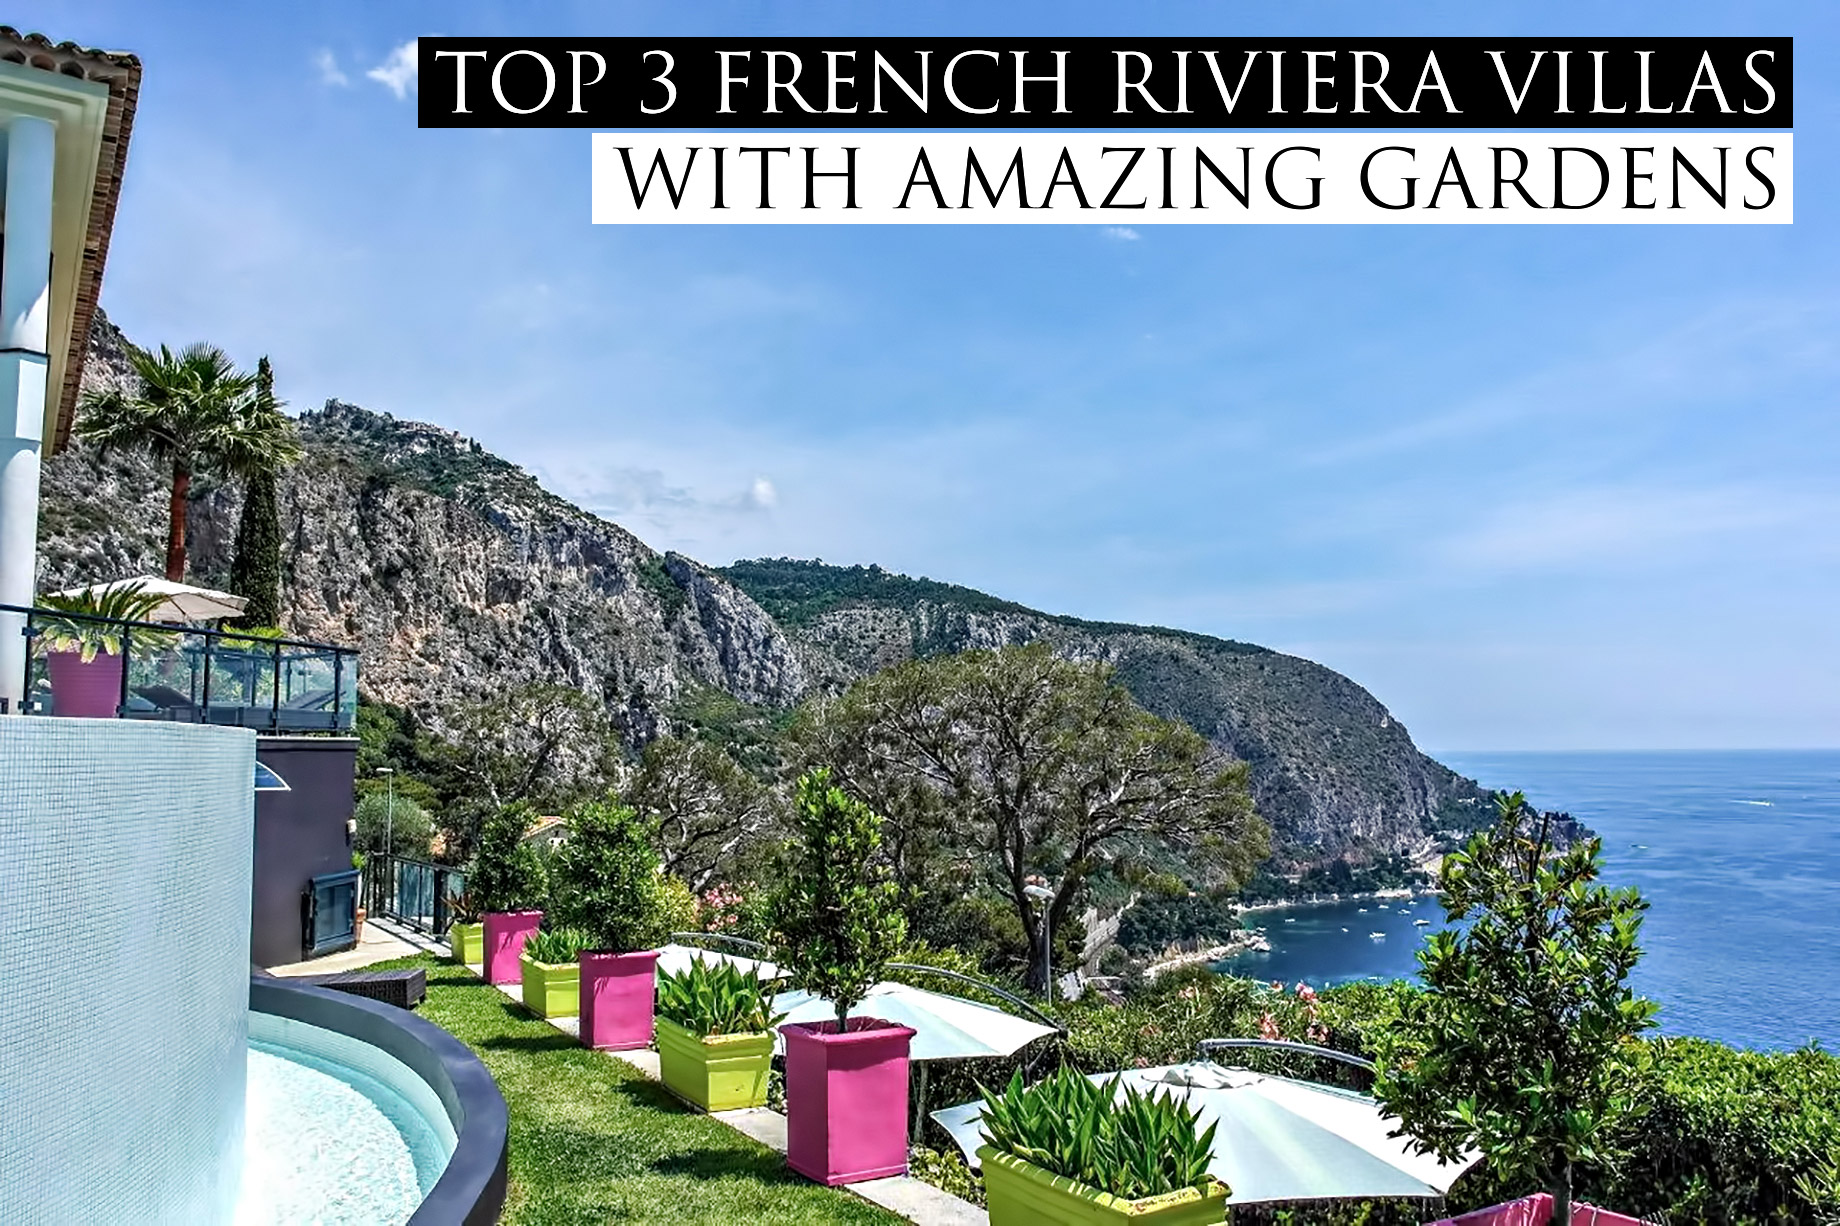 Top 3 French Riviera Villas with Amazing Gardens